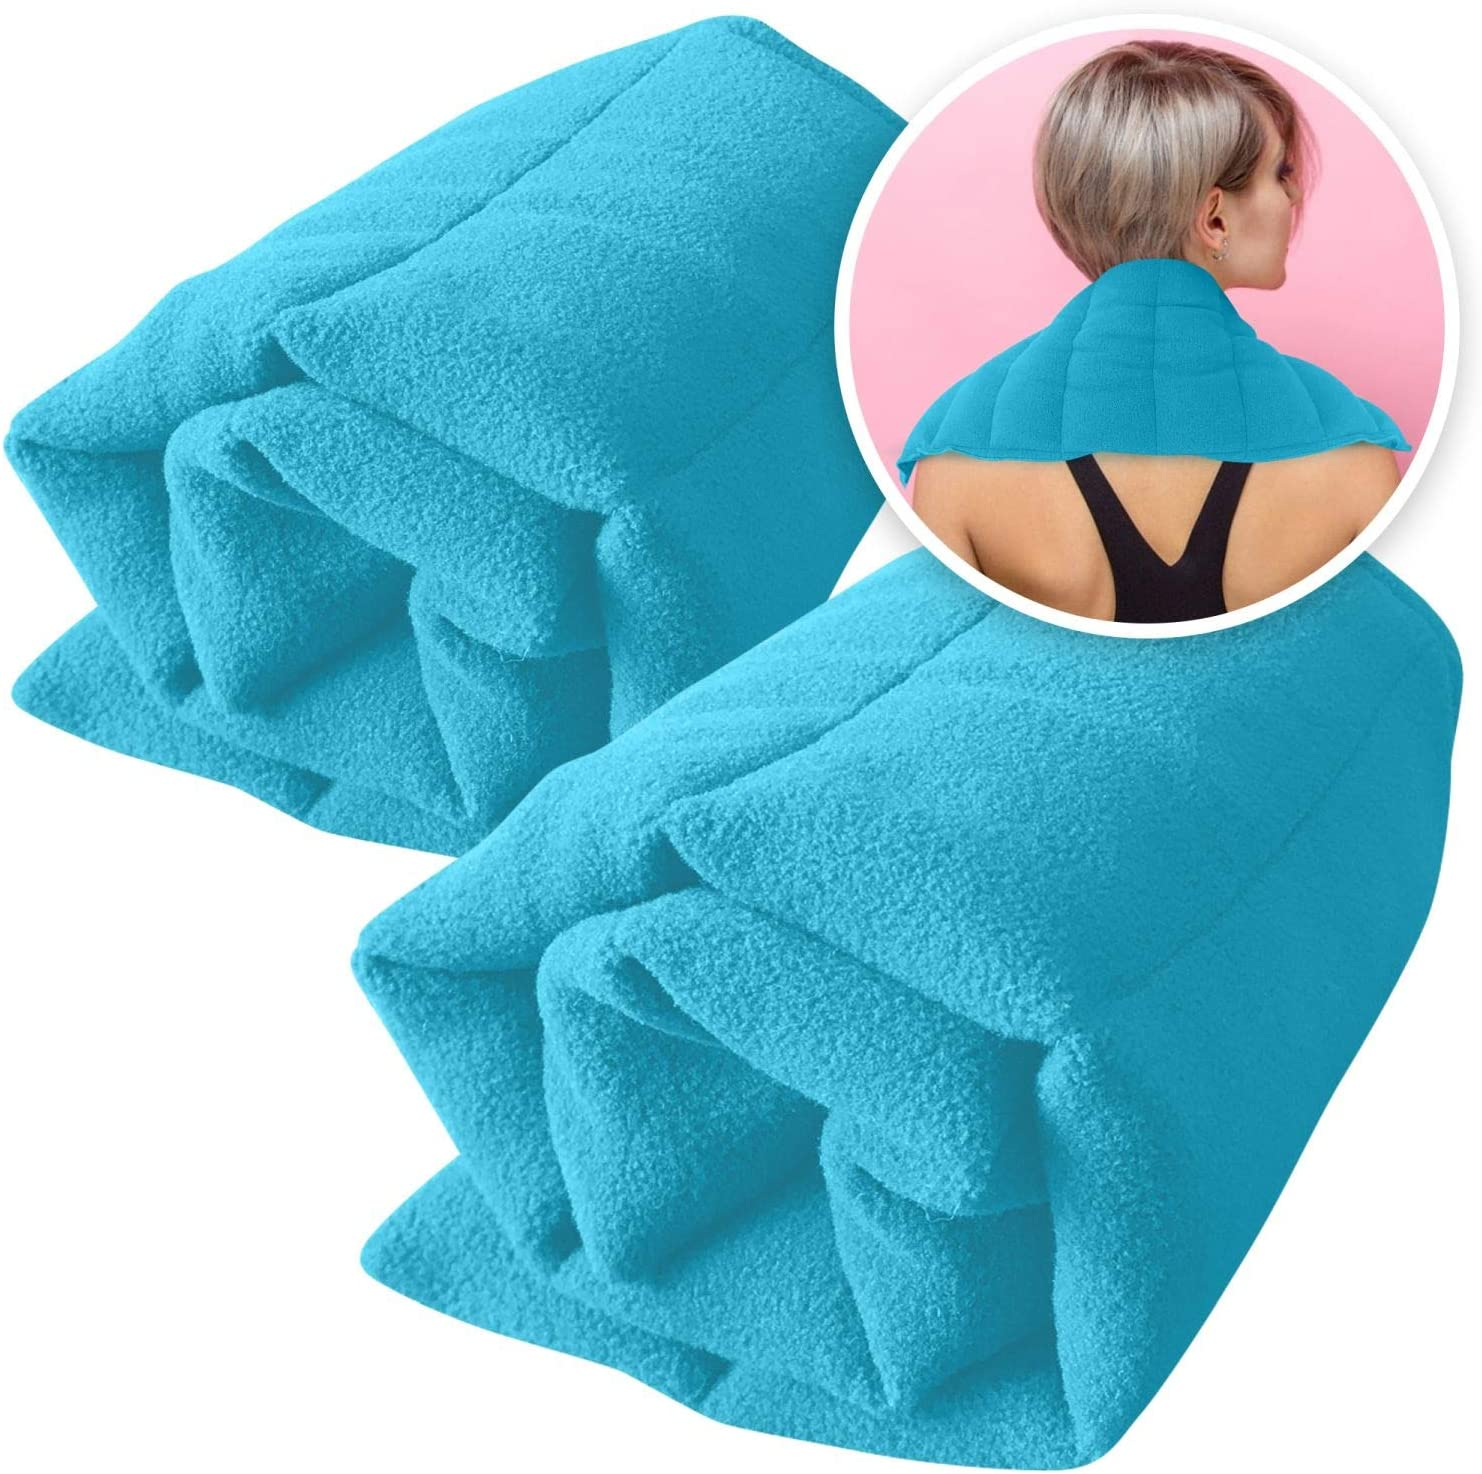 Microwavable Heating Pads Set of 2 Natural Moist Heat Pad for Back Pain, Neck and Shoulders, Nerve, Cramps, Lower Lumbar Relief